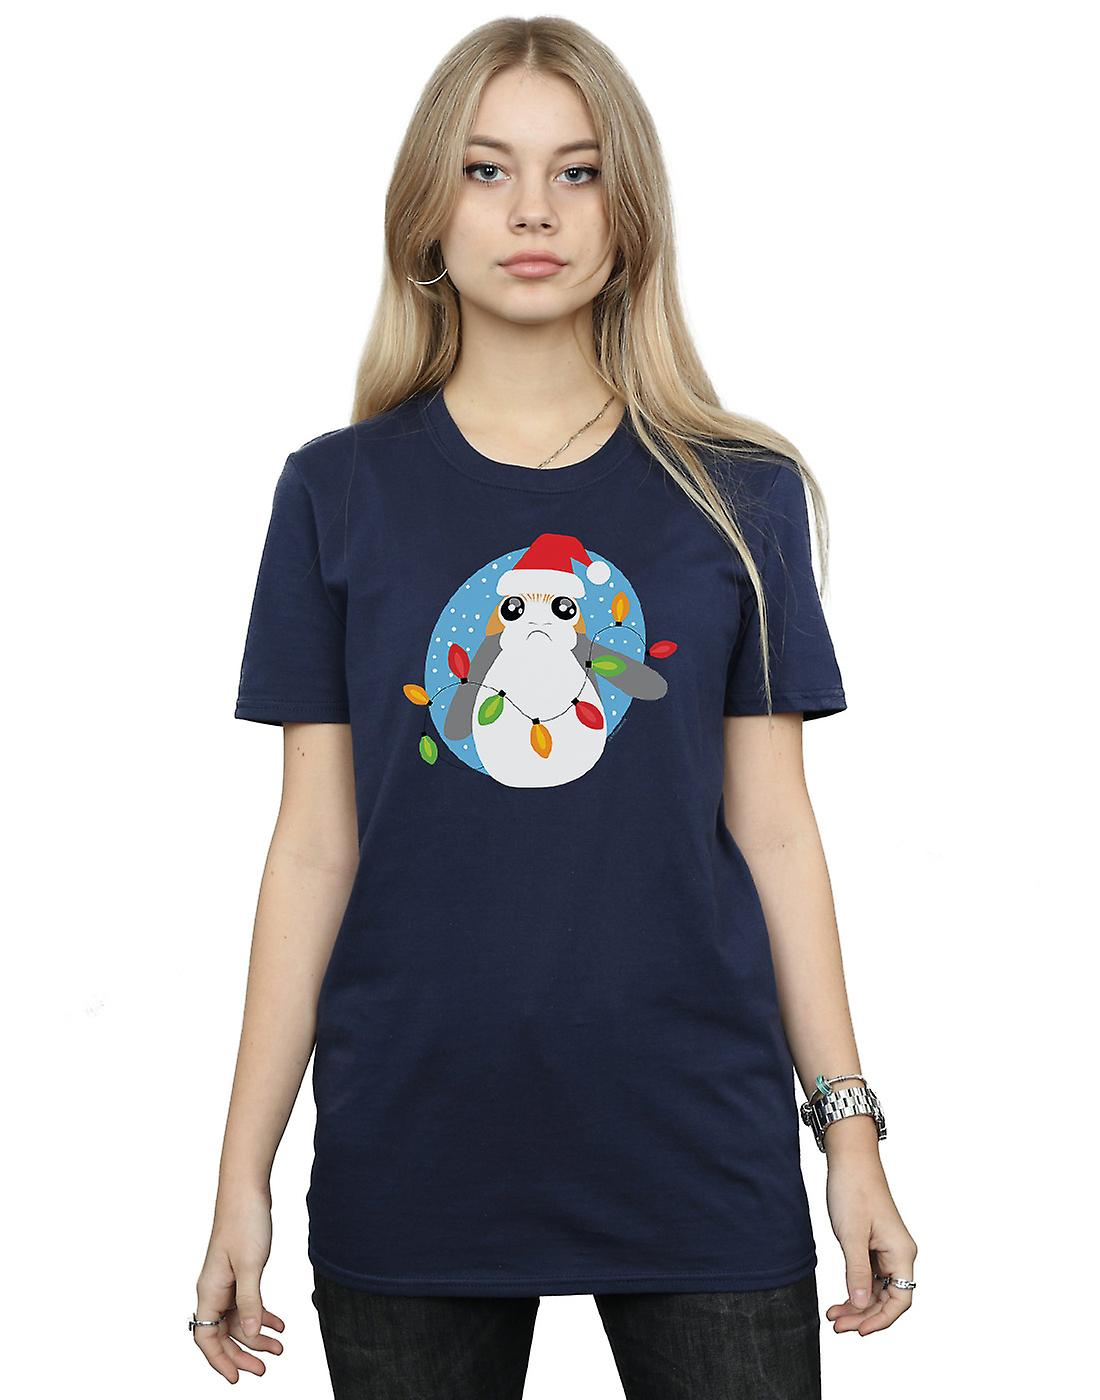 Star Wars Women's The Last Jedi Porg Christmas Lights Boyfriend Fit T-Shirt